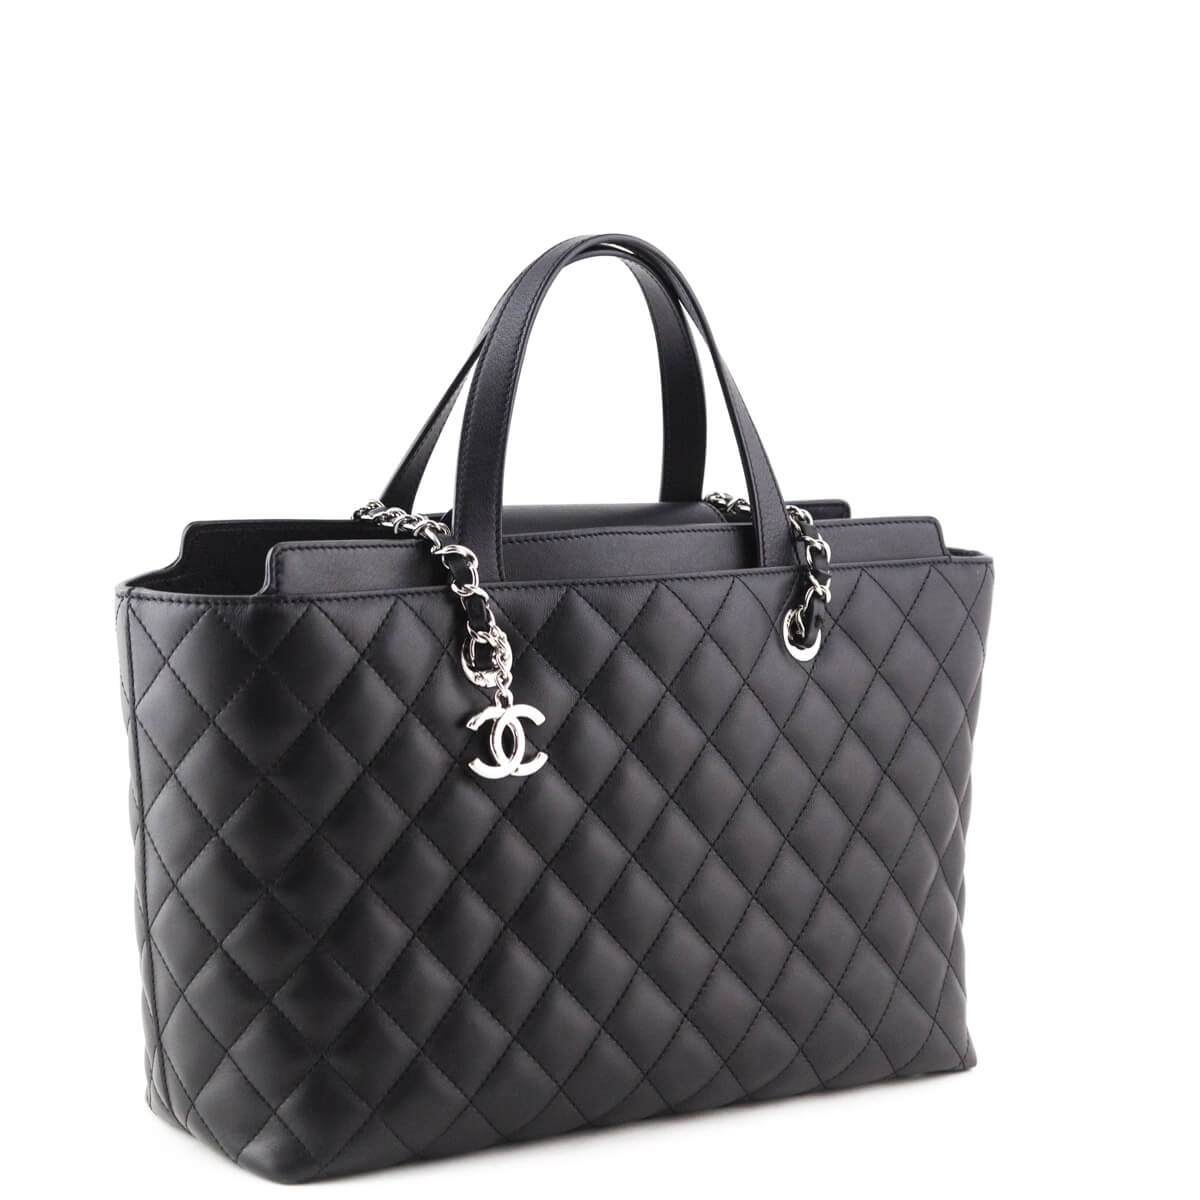 ... Chanel Black Calfskin Shopping Tote - LOVE that BAG - Preowned  Authentic Designer Handbags ... dc19d59174546